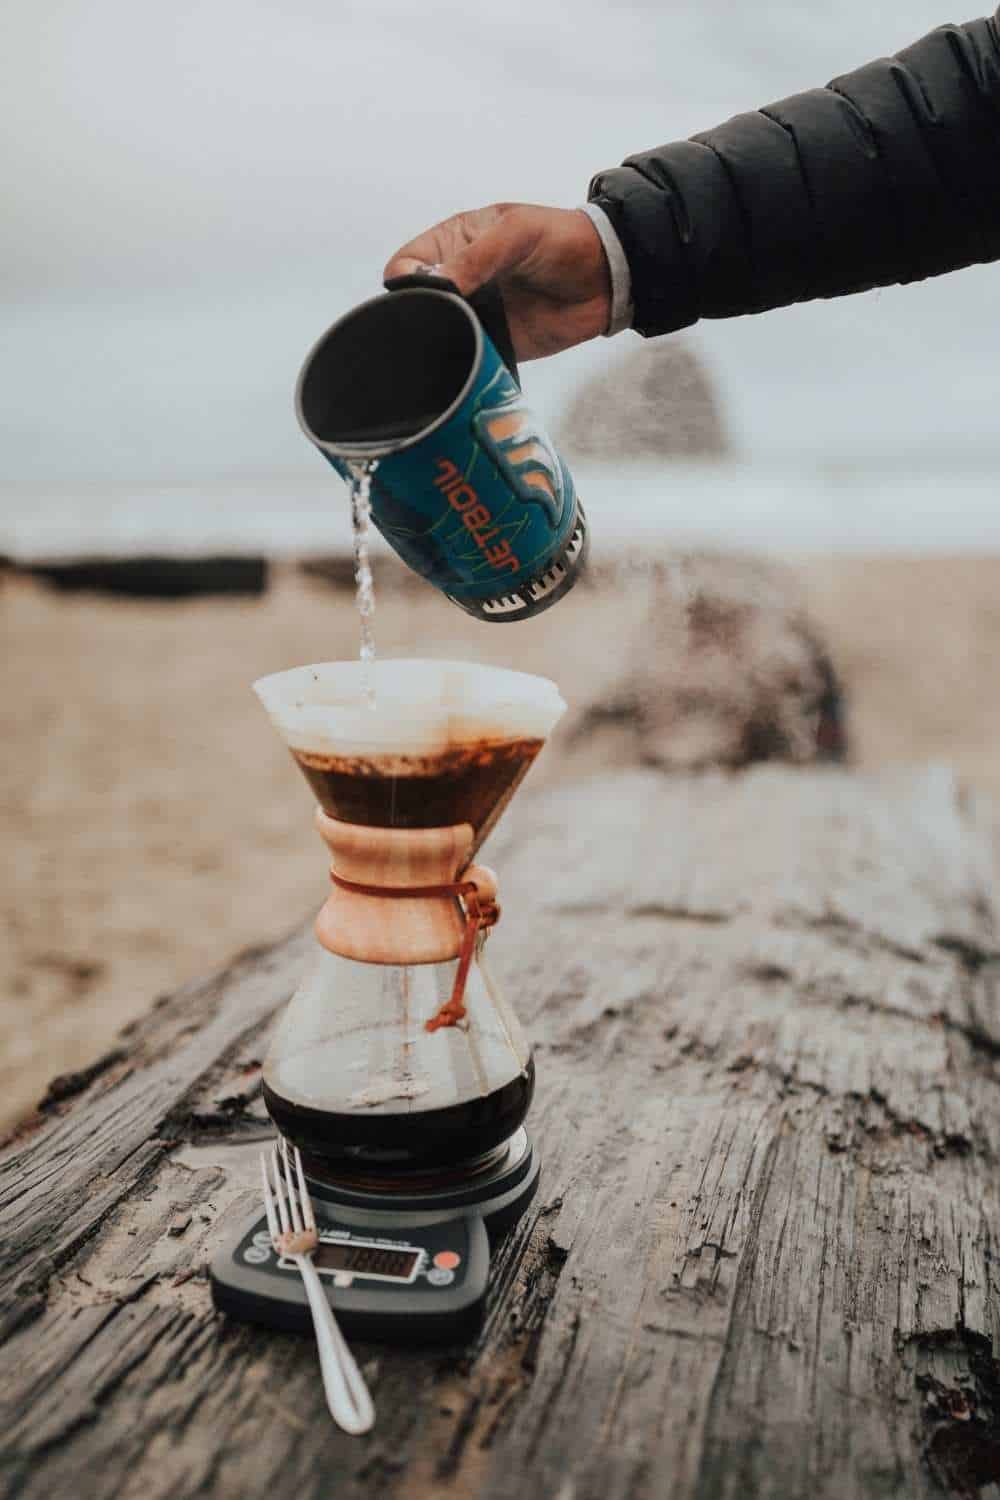 Best Camping Stoves - Berty Pouring JetBoil into Chemex coffee maker